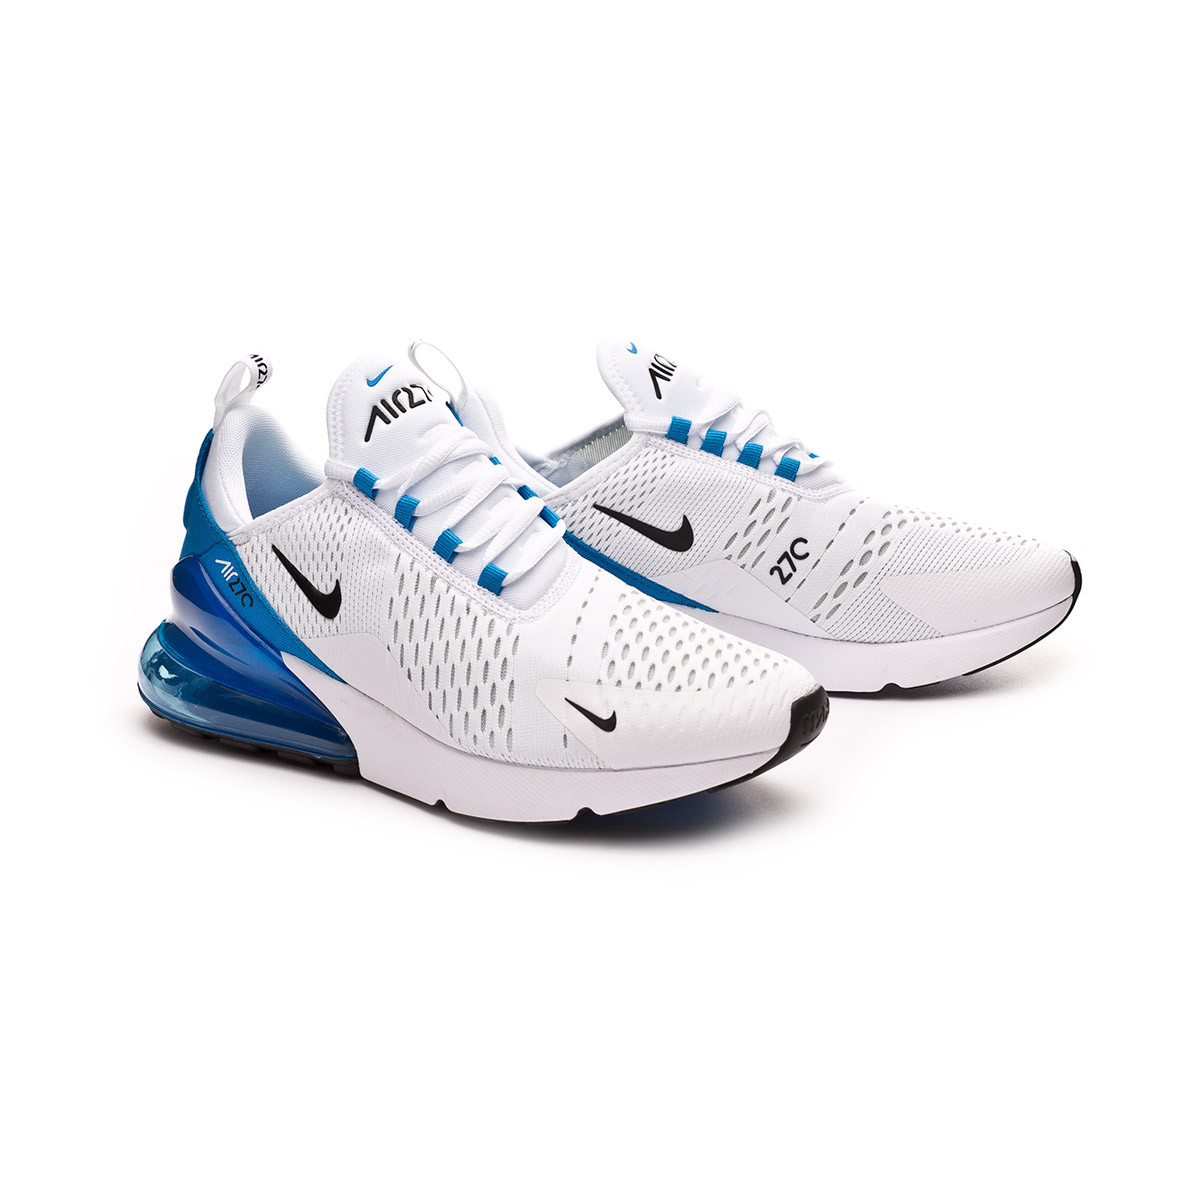 no sale tax 3e044 d0b74 Zapatilla Air Max 270 White-Black-Photo blue-Pure platinum